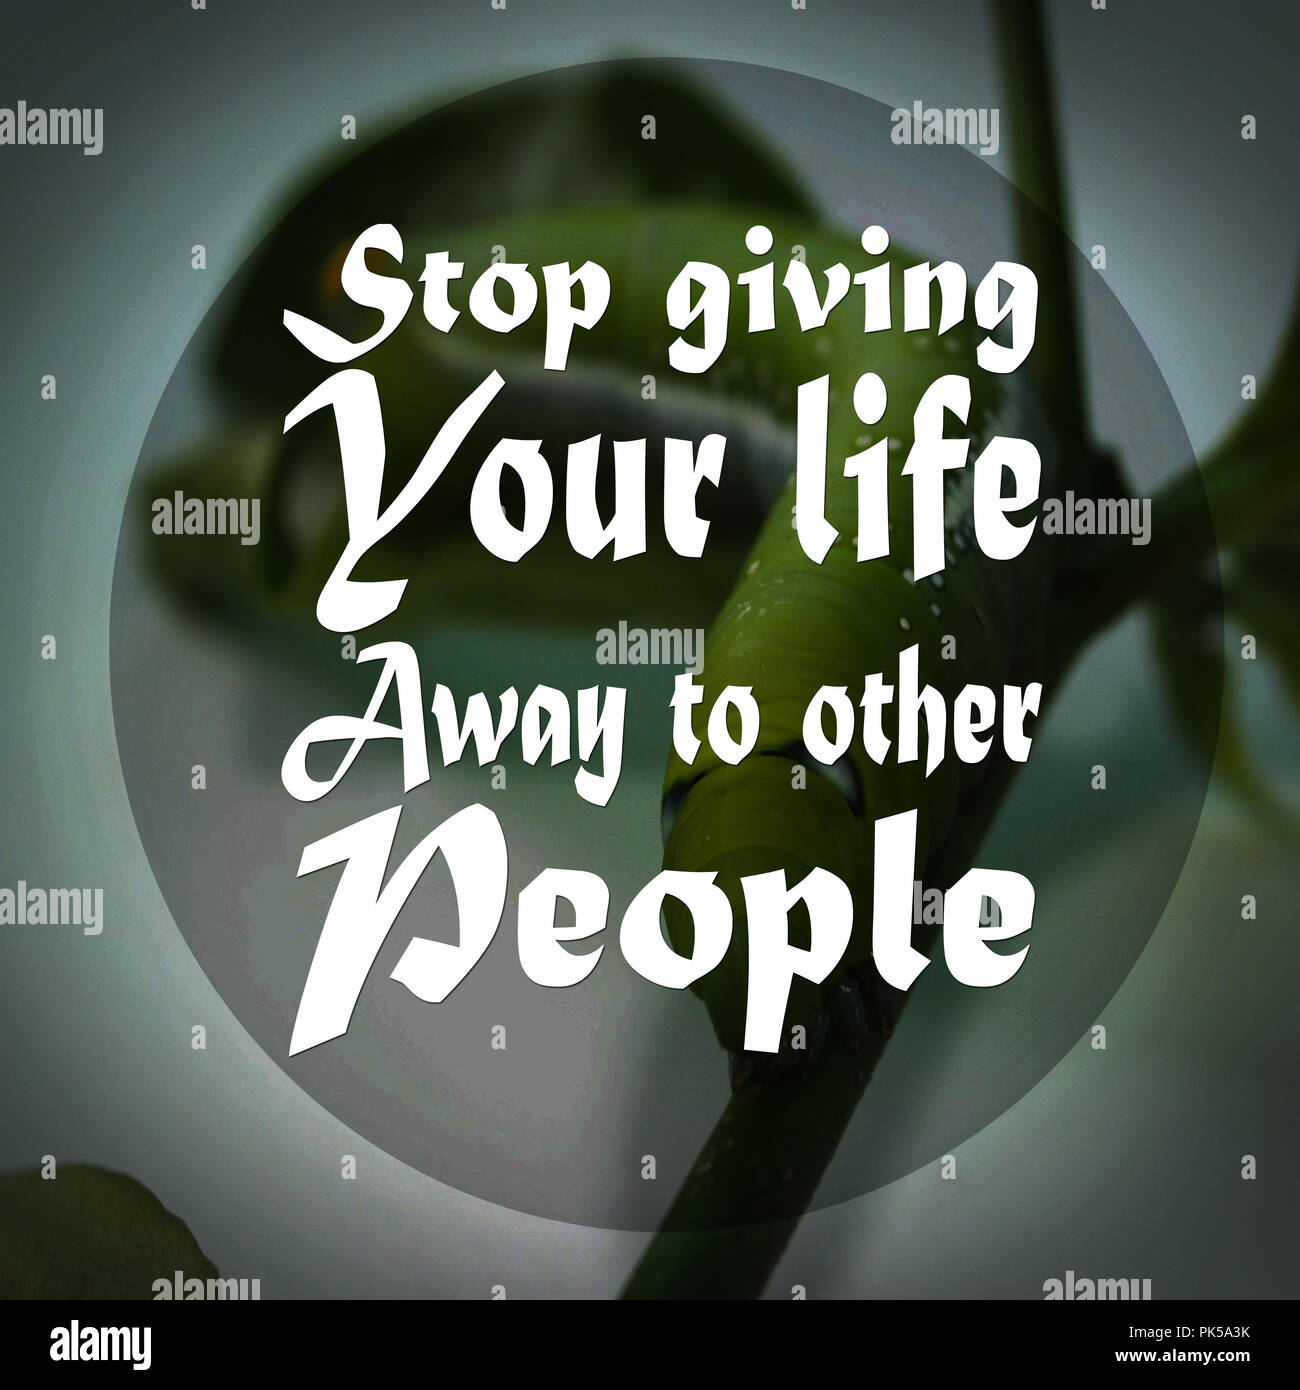 Image of: Negativity Inspirational Quotes Stop Giving Your Life Away To Other People Positive Motivational Collegeamerica Inspirational Quotes Stop Giving Your Life Away To Other People